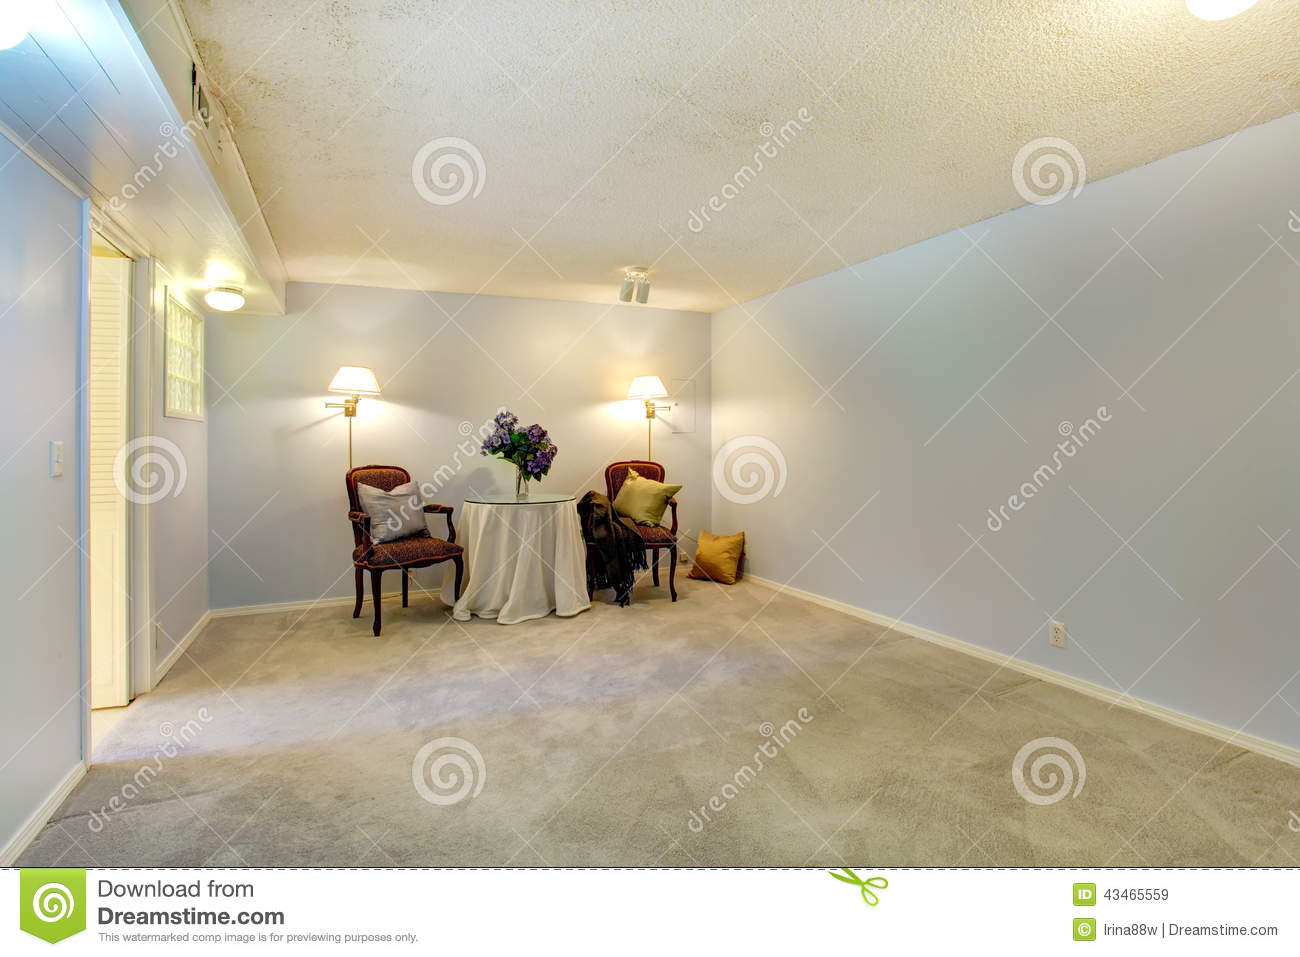 Empty room decorated with antique chairs and table stock photo image